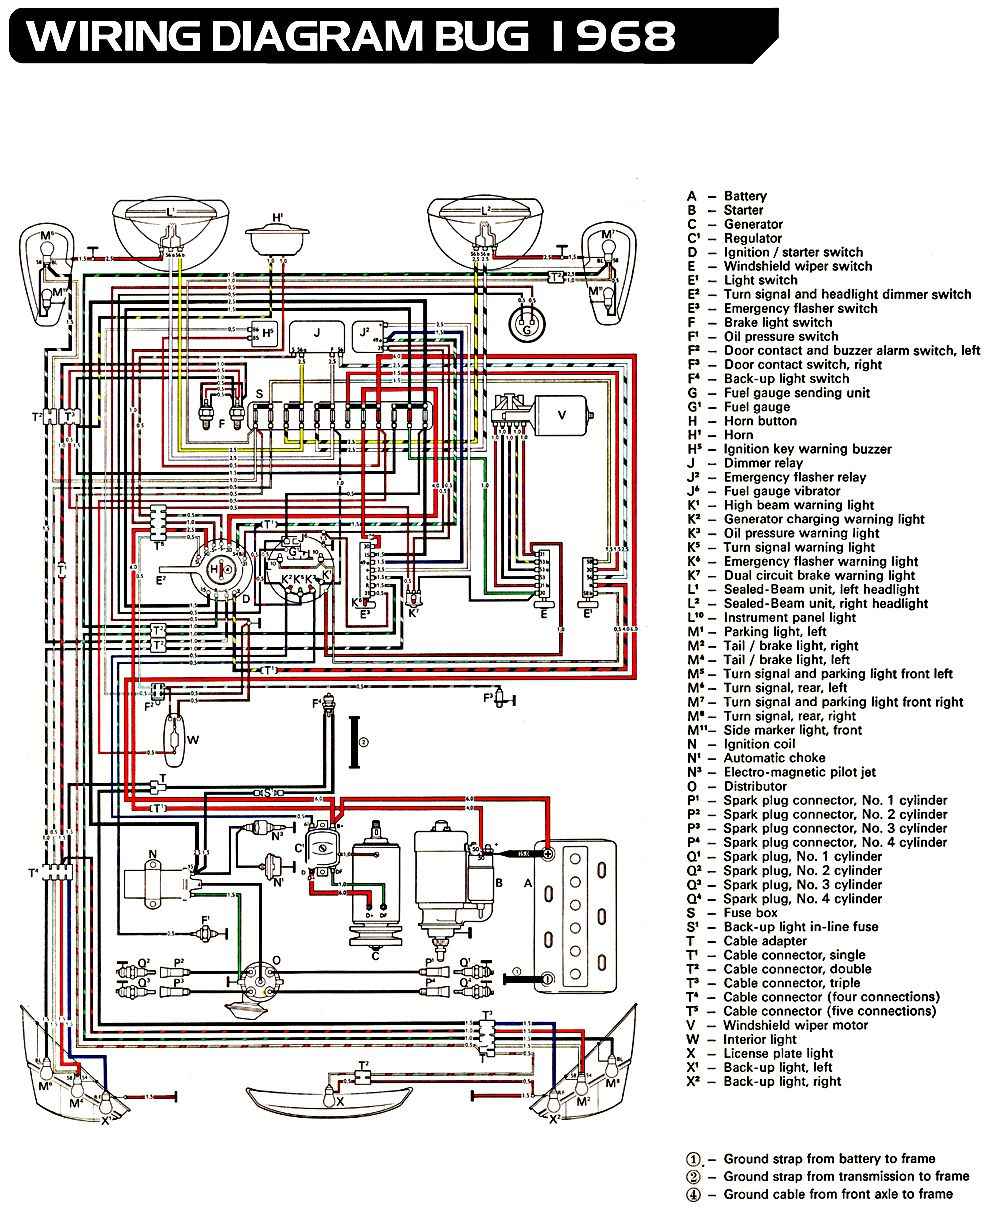 3a1908112d3826270ed5e3be362292bf vw bug ignition wiring diagram 73 vw wiring diagram free vw beetle wiring diagram at creativeand.co